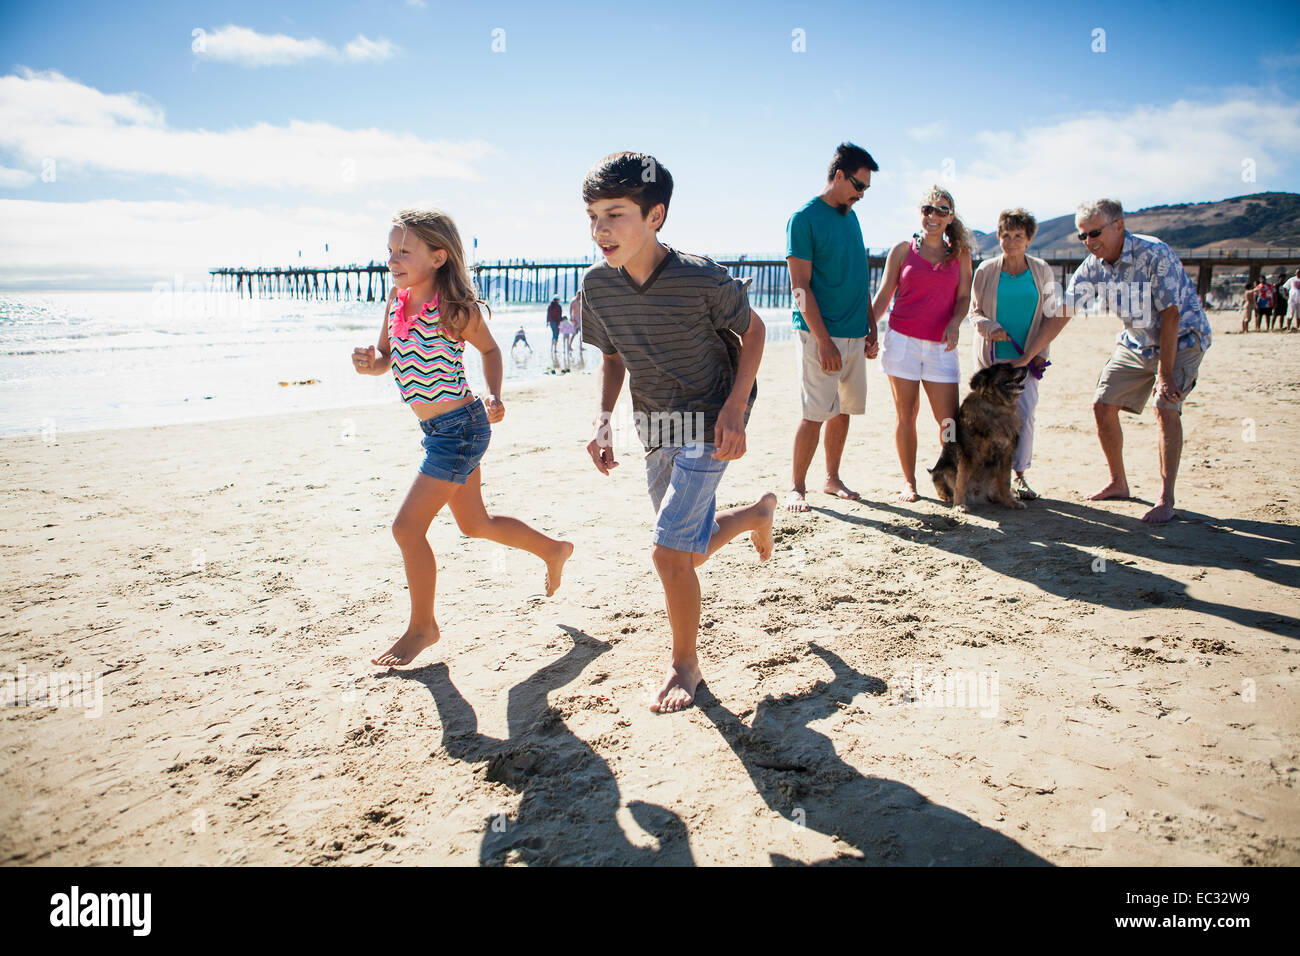 Toma un paseo familiar, Pismo Beach, Central Coast, California, Estados Unidos de América Imagen De Stock